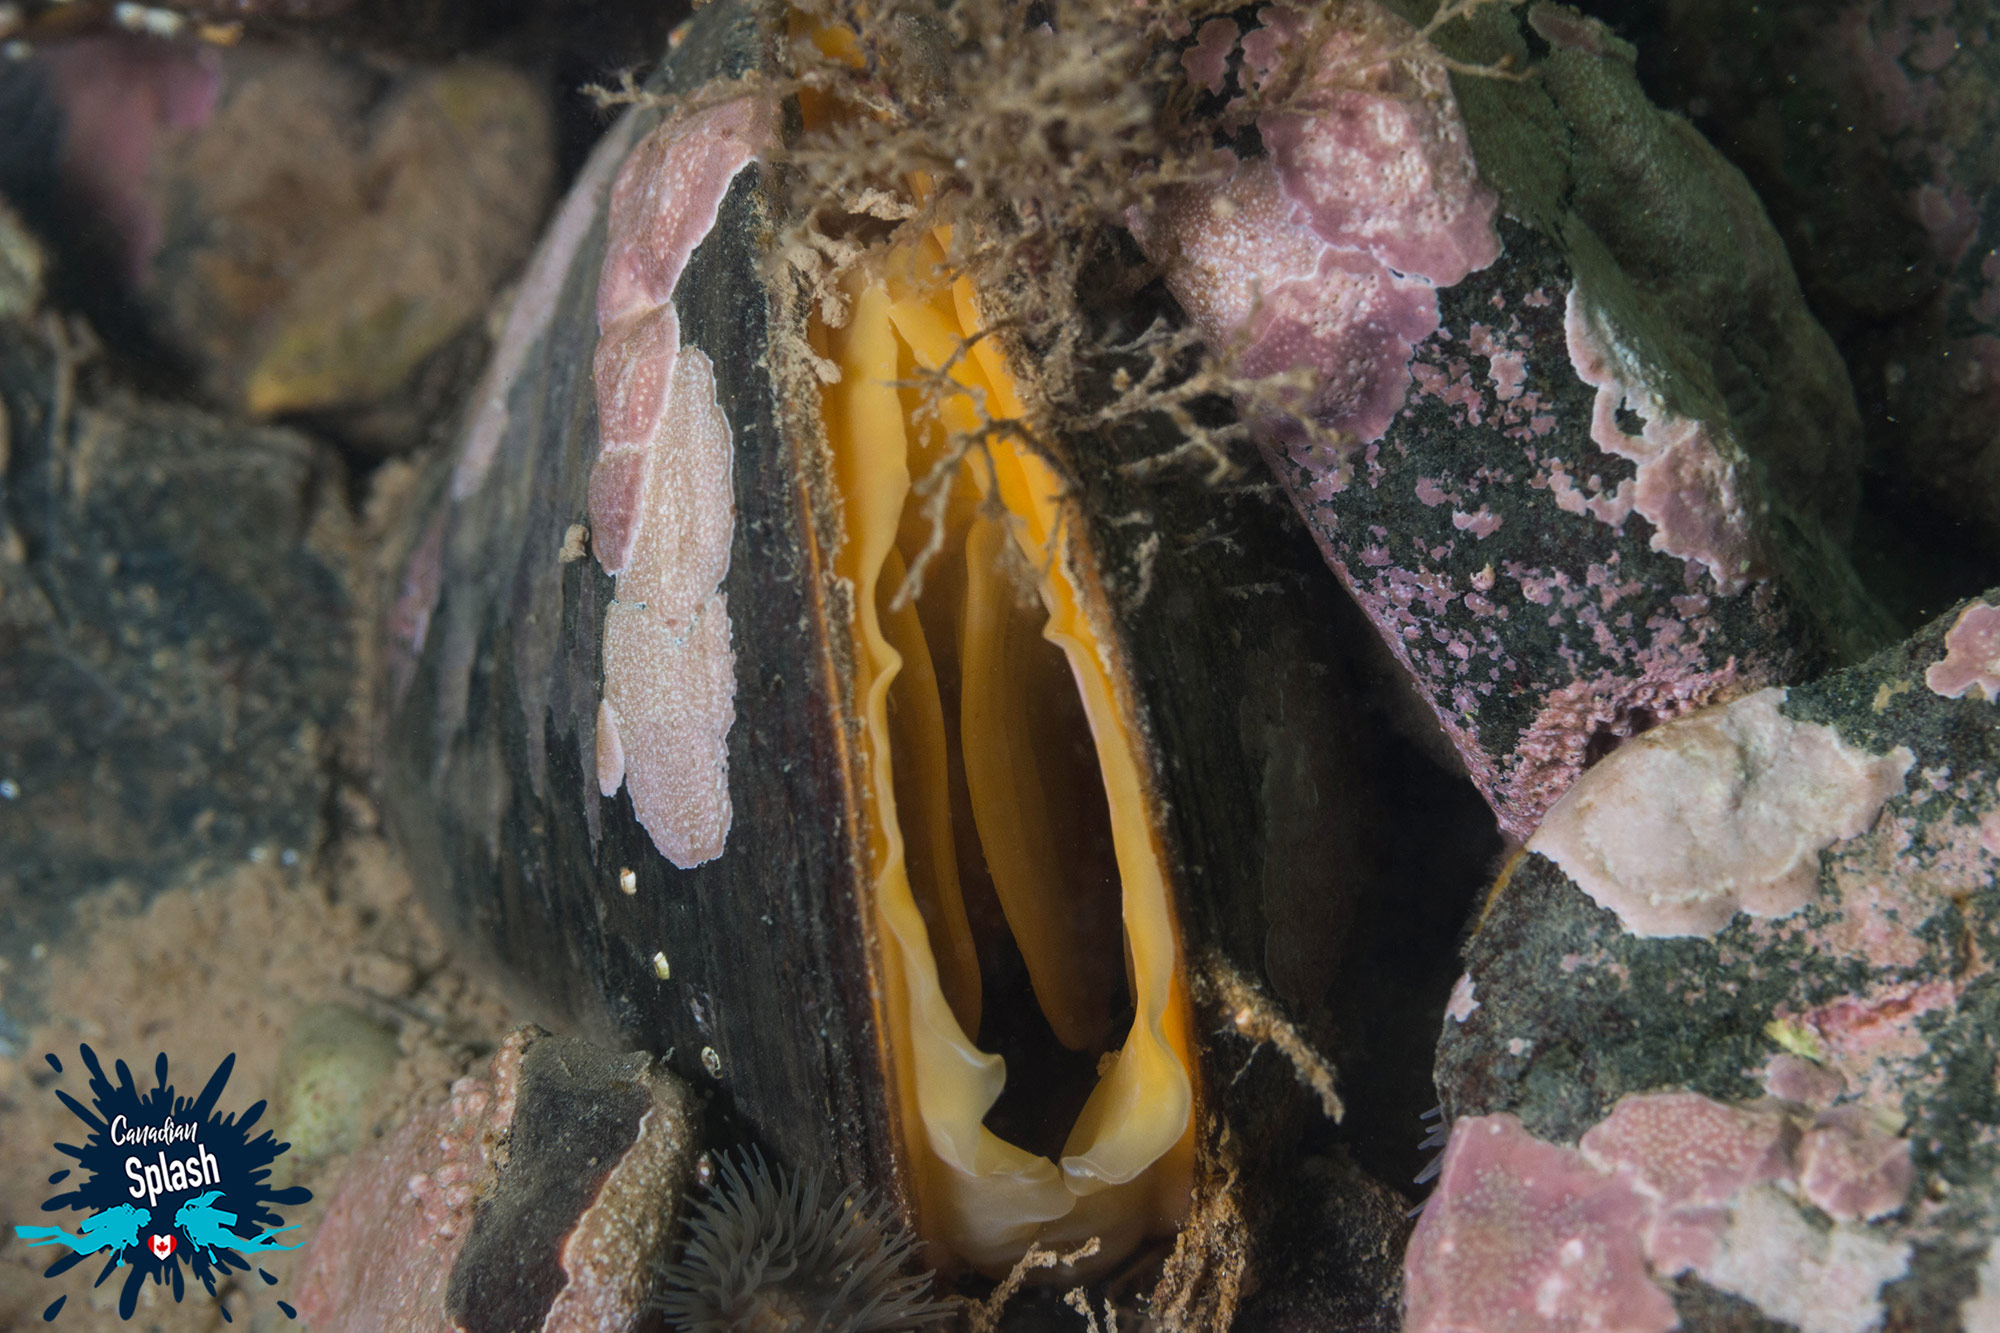 The Opening Of A Saltwater Mussel On The East Coast Of Canada, New Brunswick